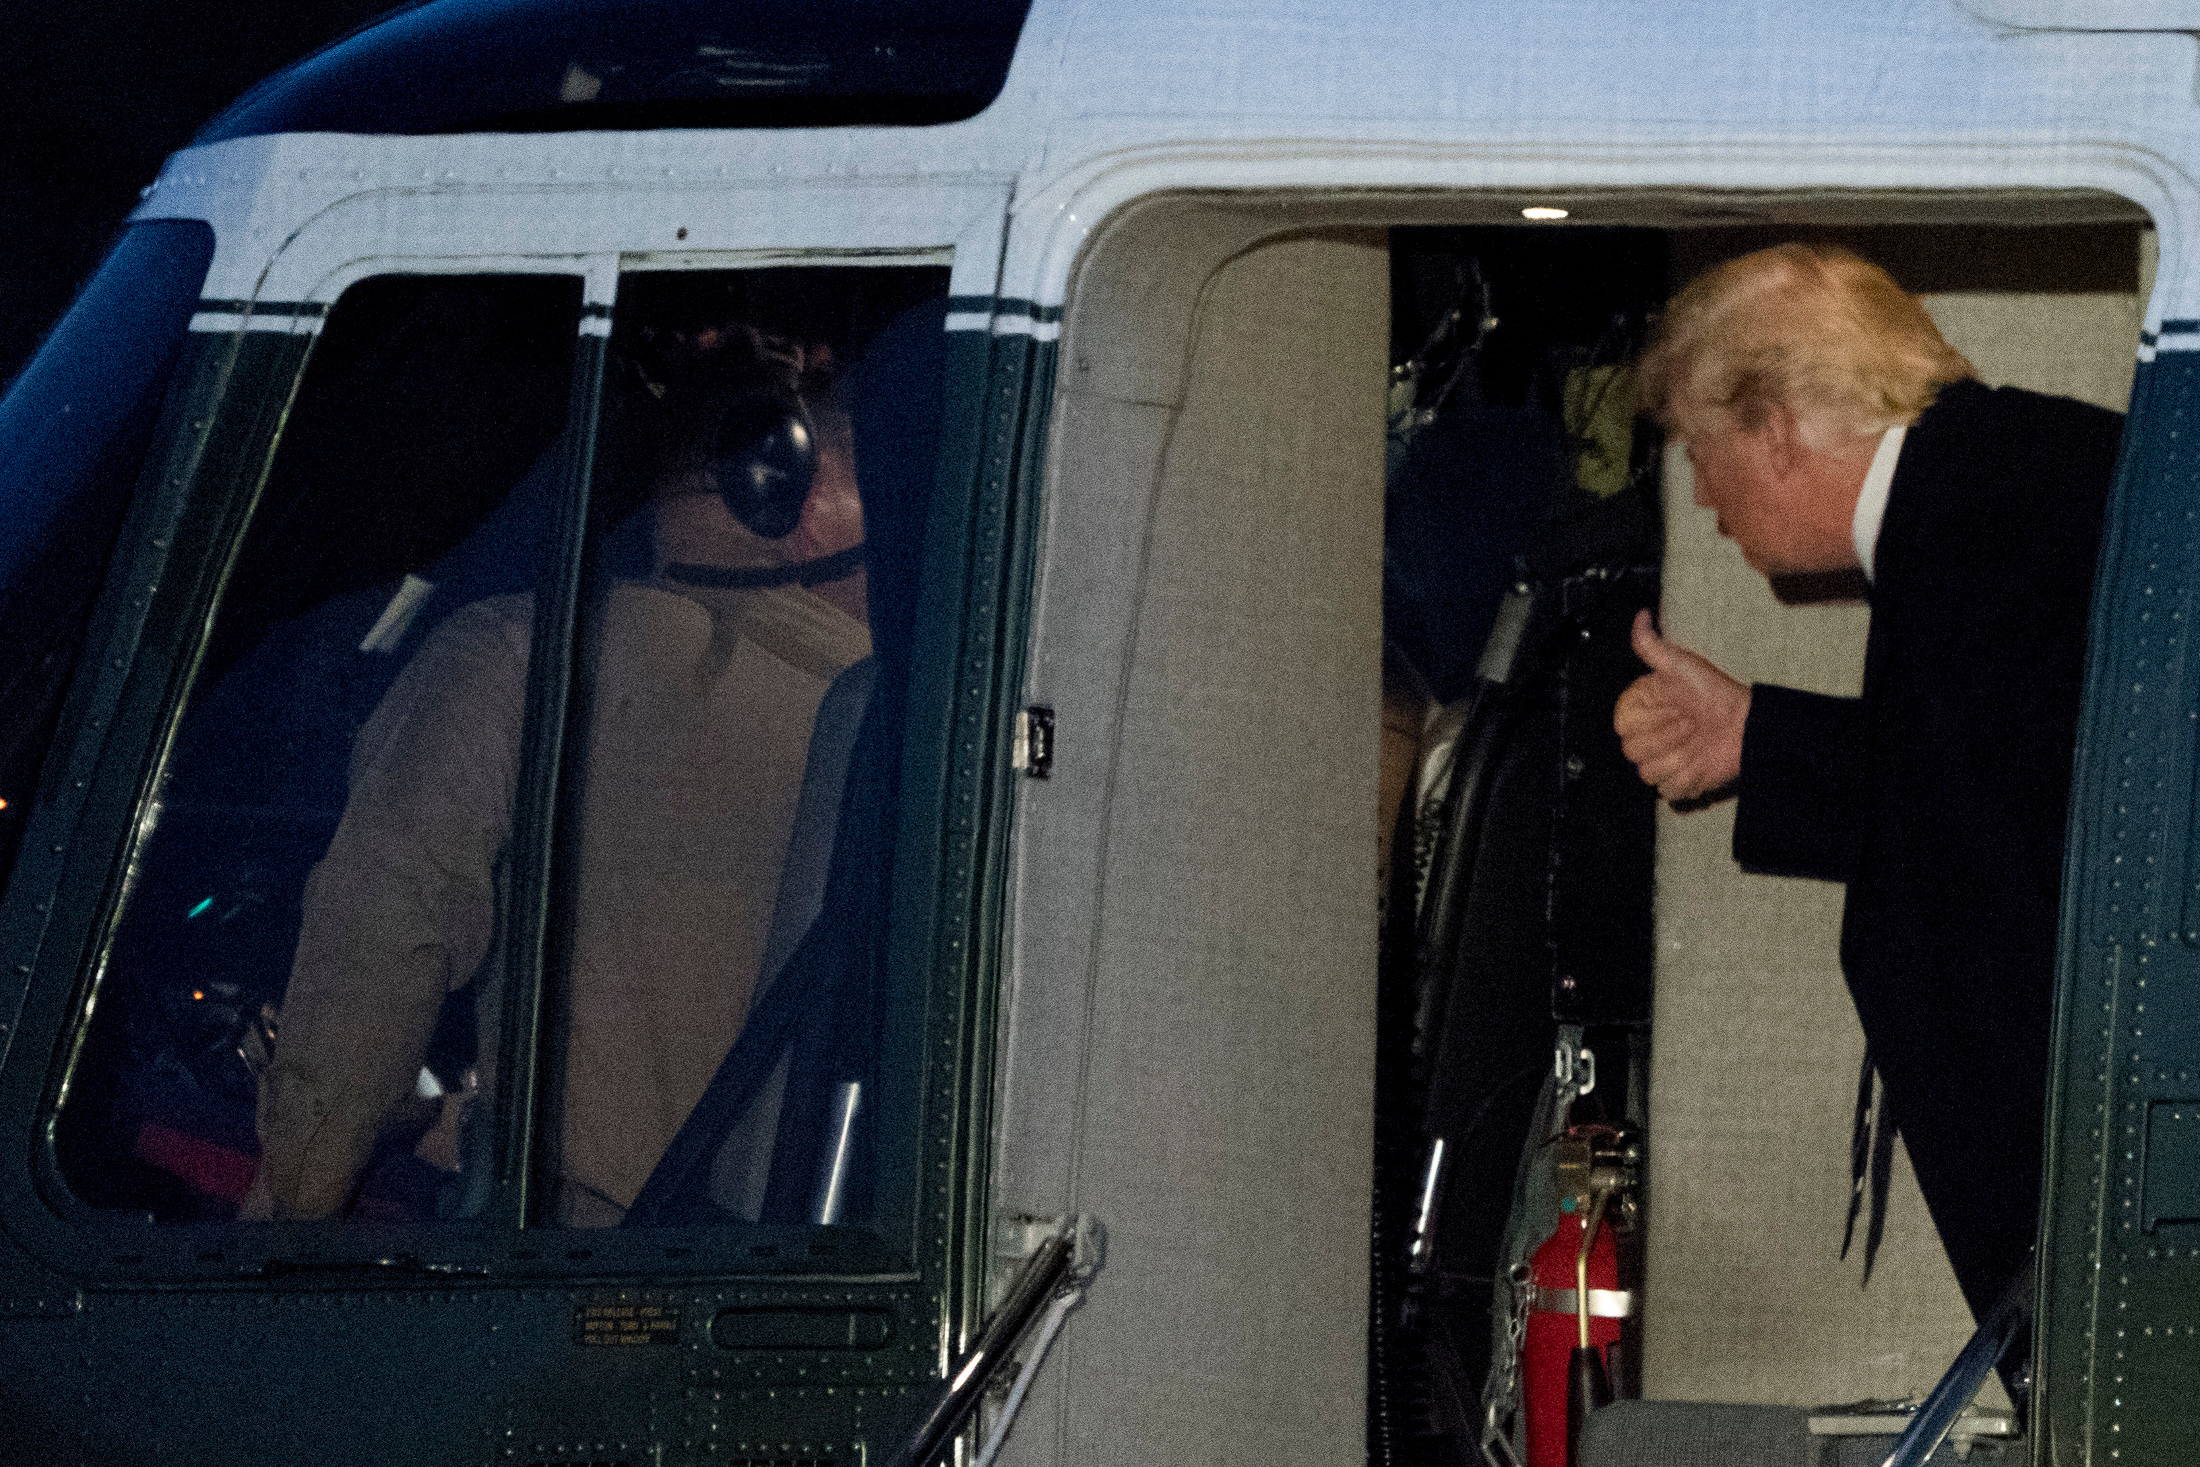 President Donald Trump gives a thumbs up to the crew of Marine One as he arrives on the South Lawn of the White House in Washington, Saturday, Dec. 2, 2017, after Trump traveled to New York for a fundraising event. (AP Photo/Andrew Harnik)